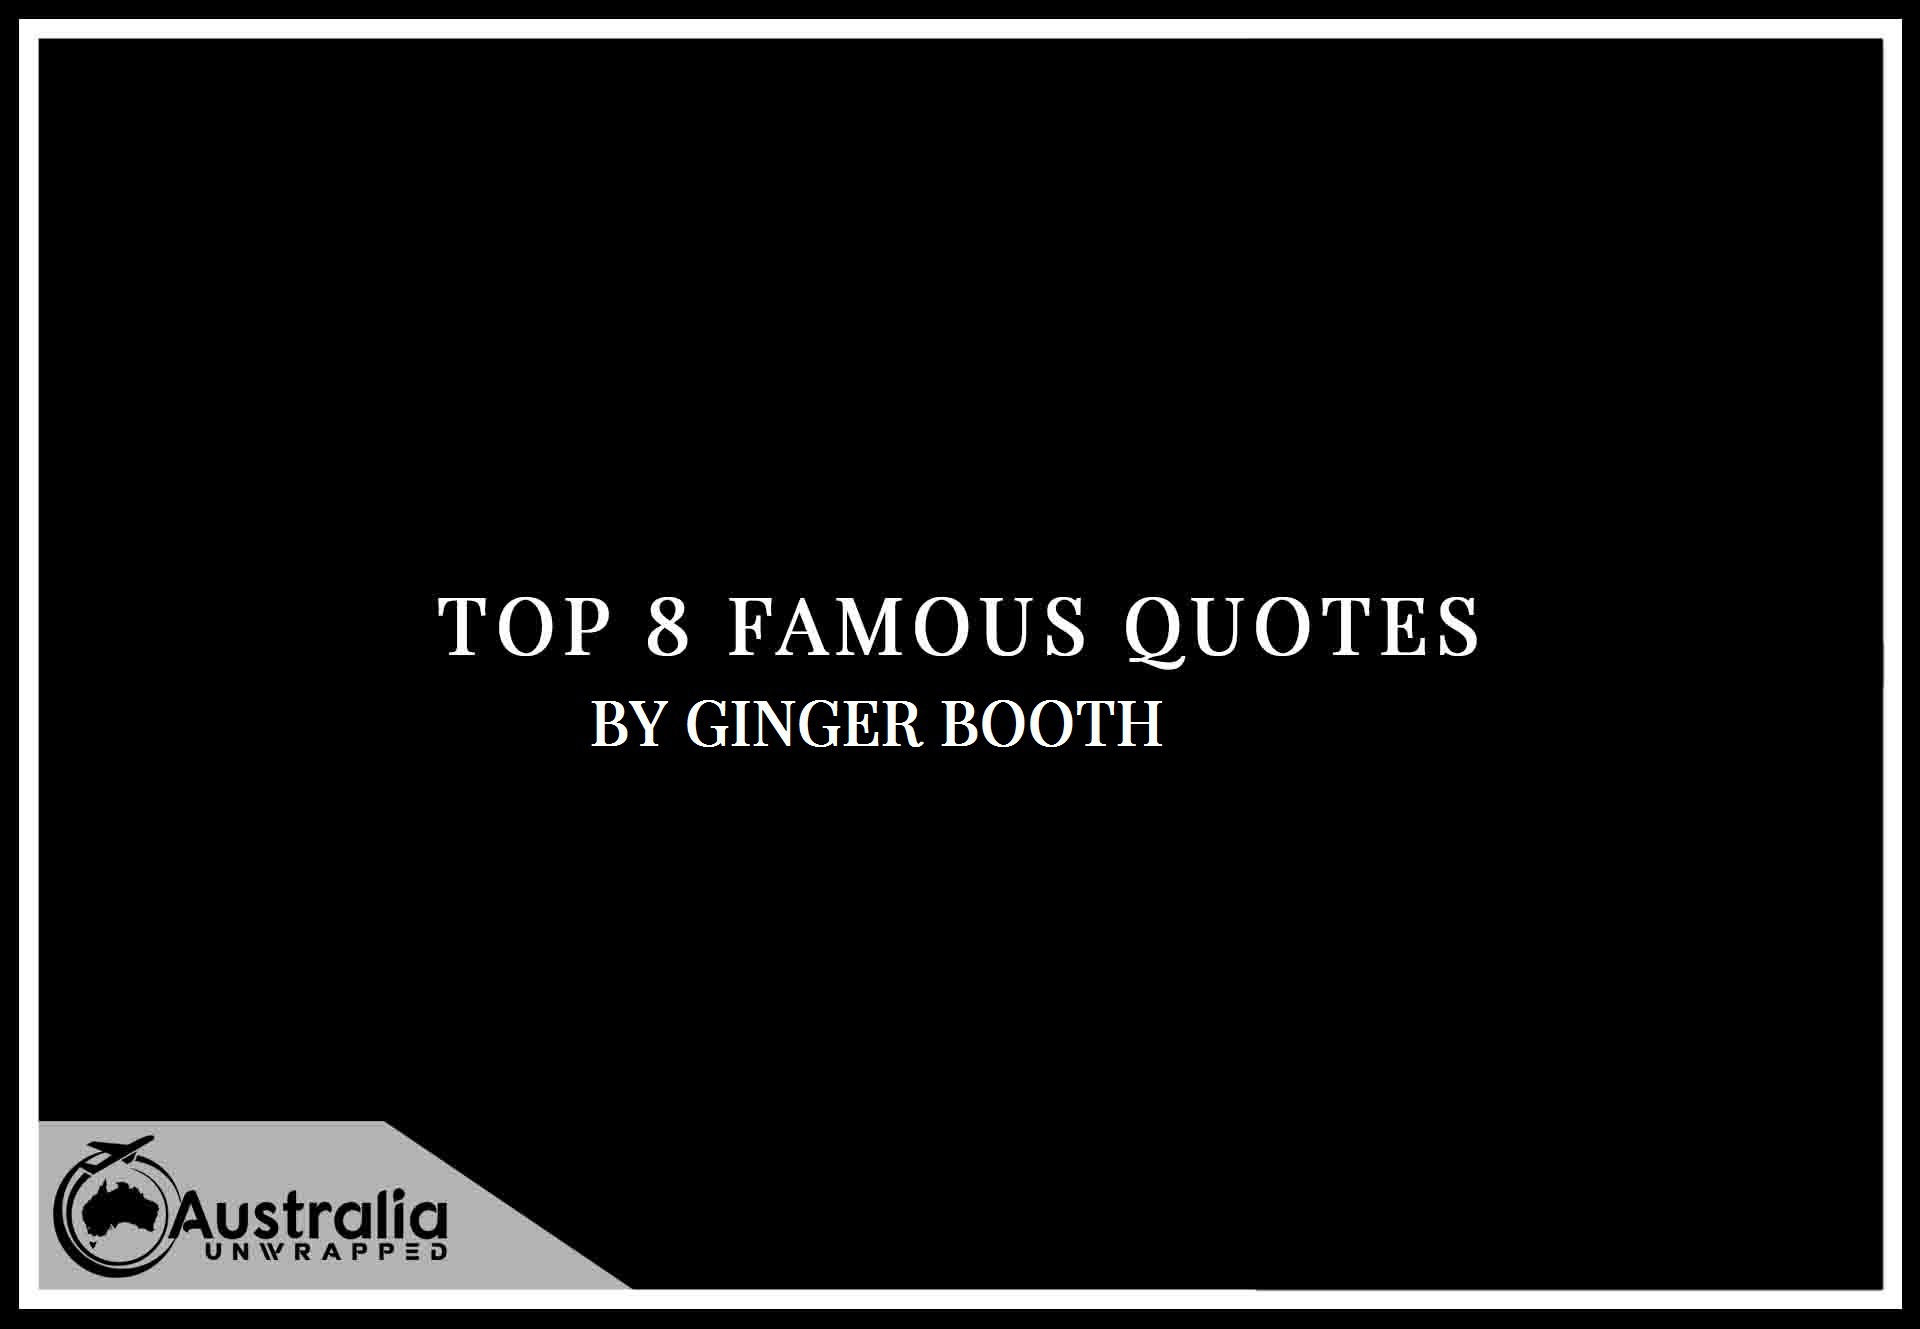 Ginger Booth's Top 8 Popular and Famous Quotes